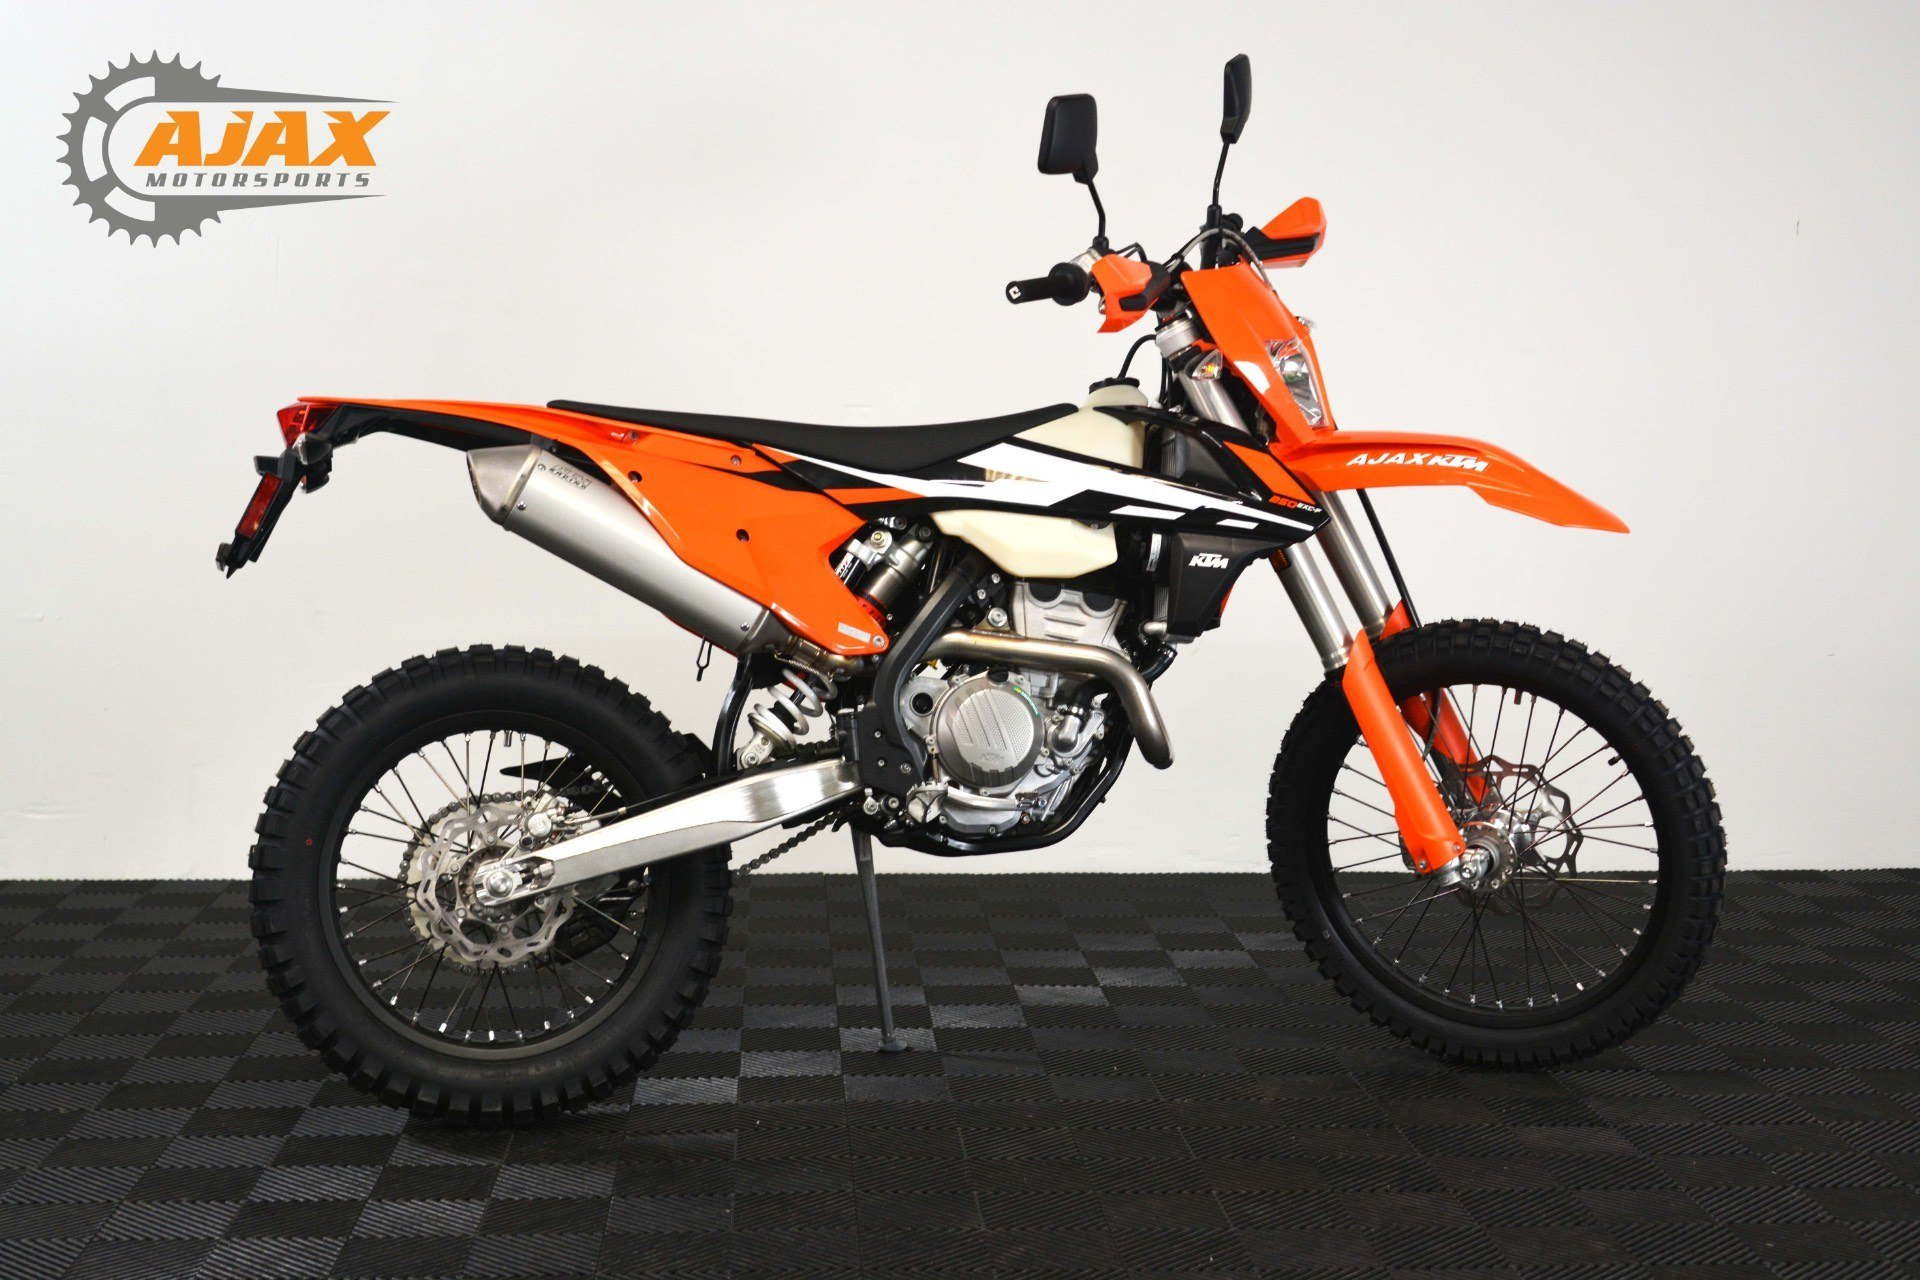 2017 KTM 250 EXC-F in Oklahoma City, Oklahoma